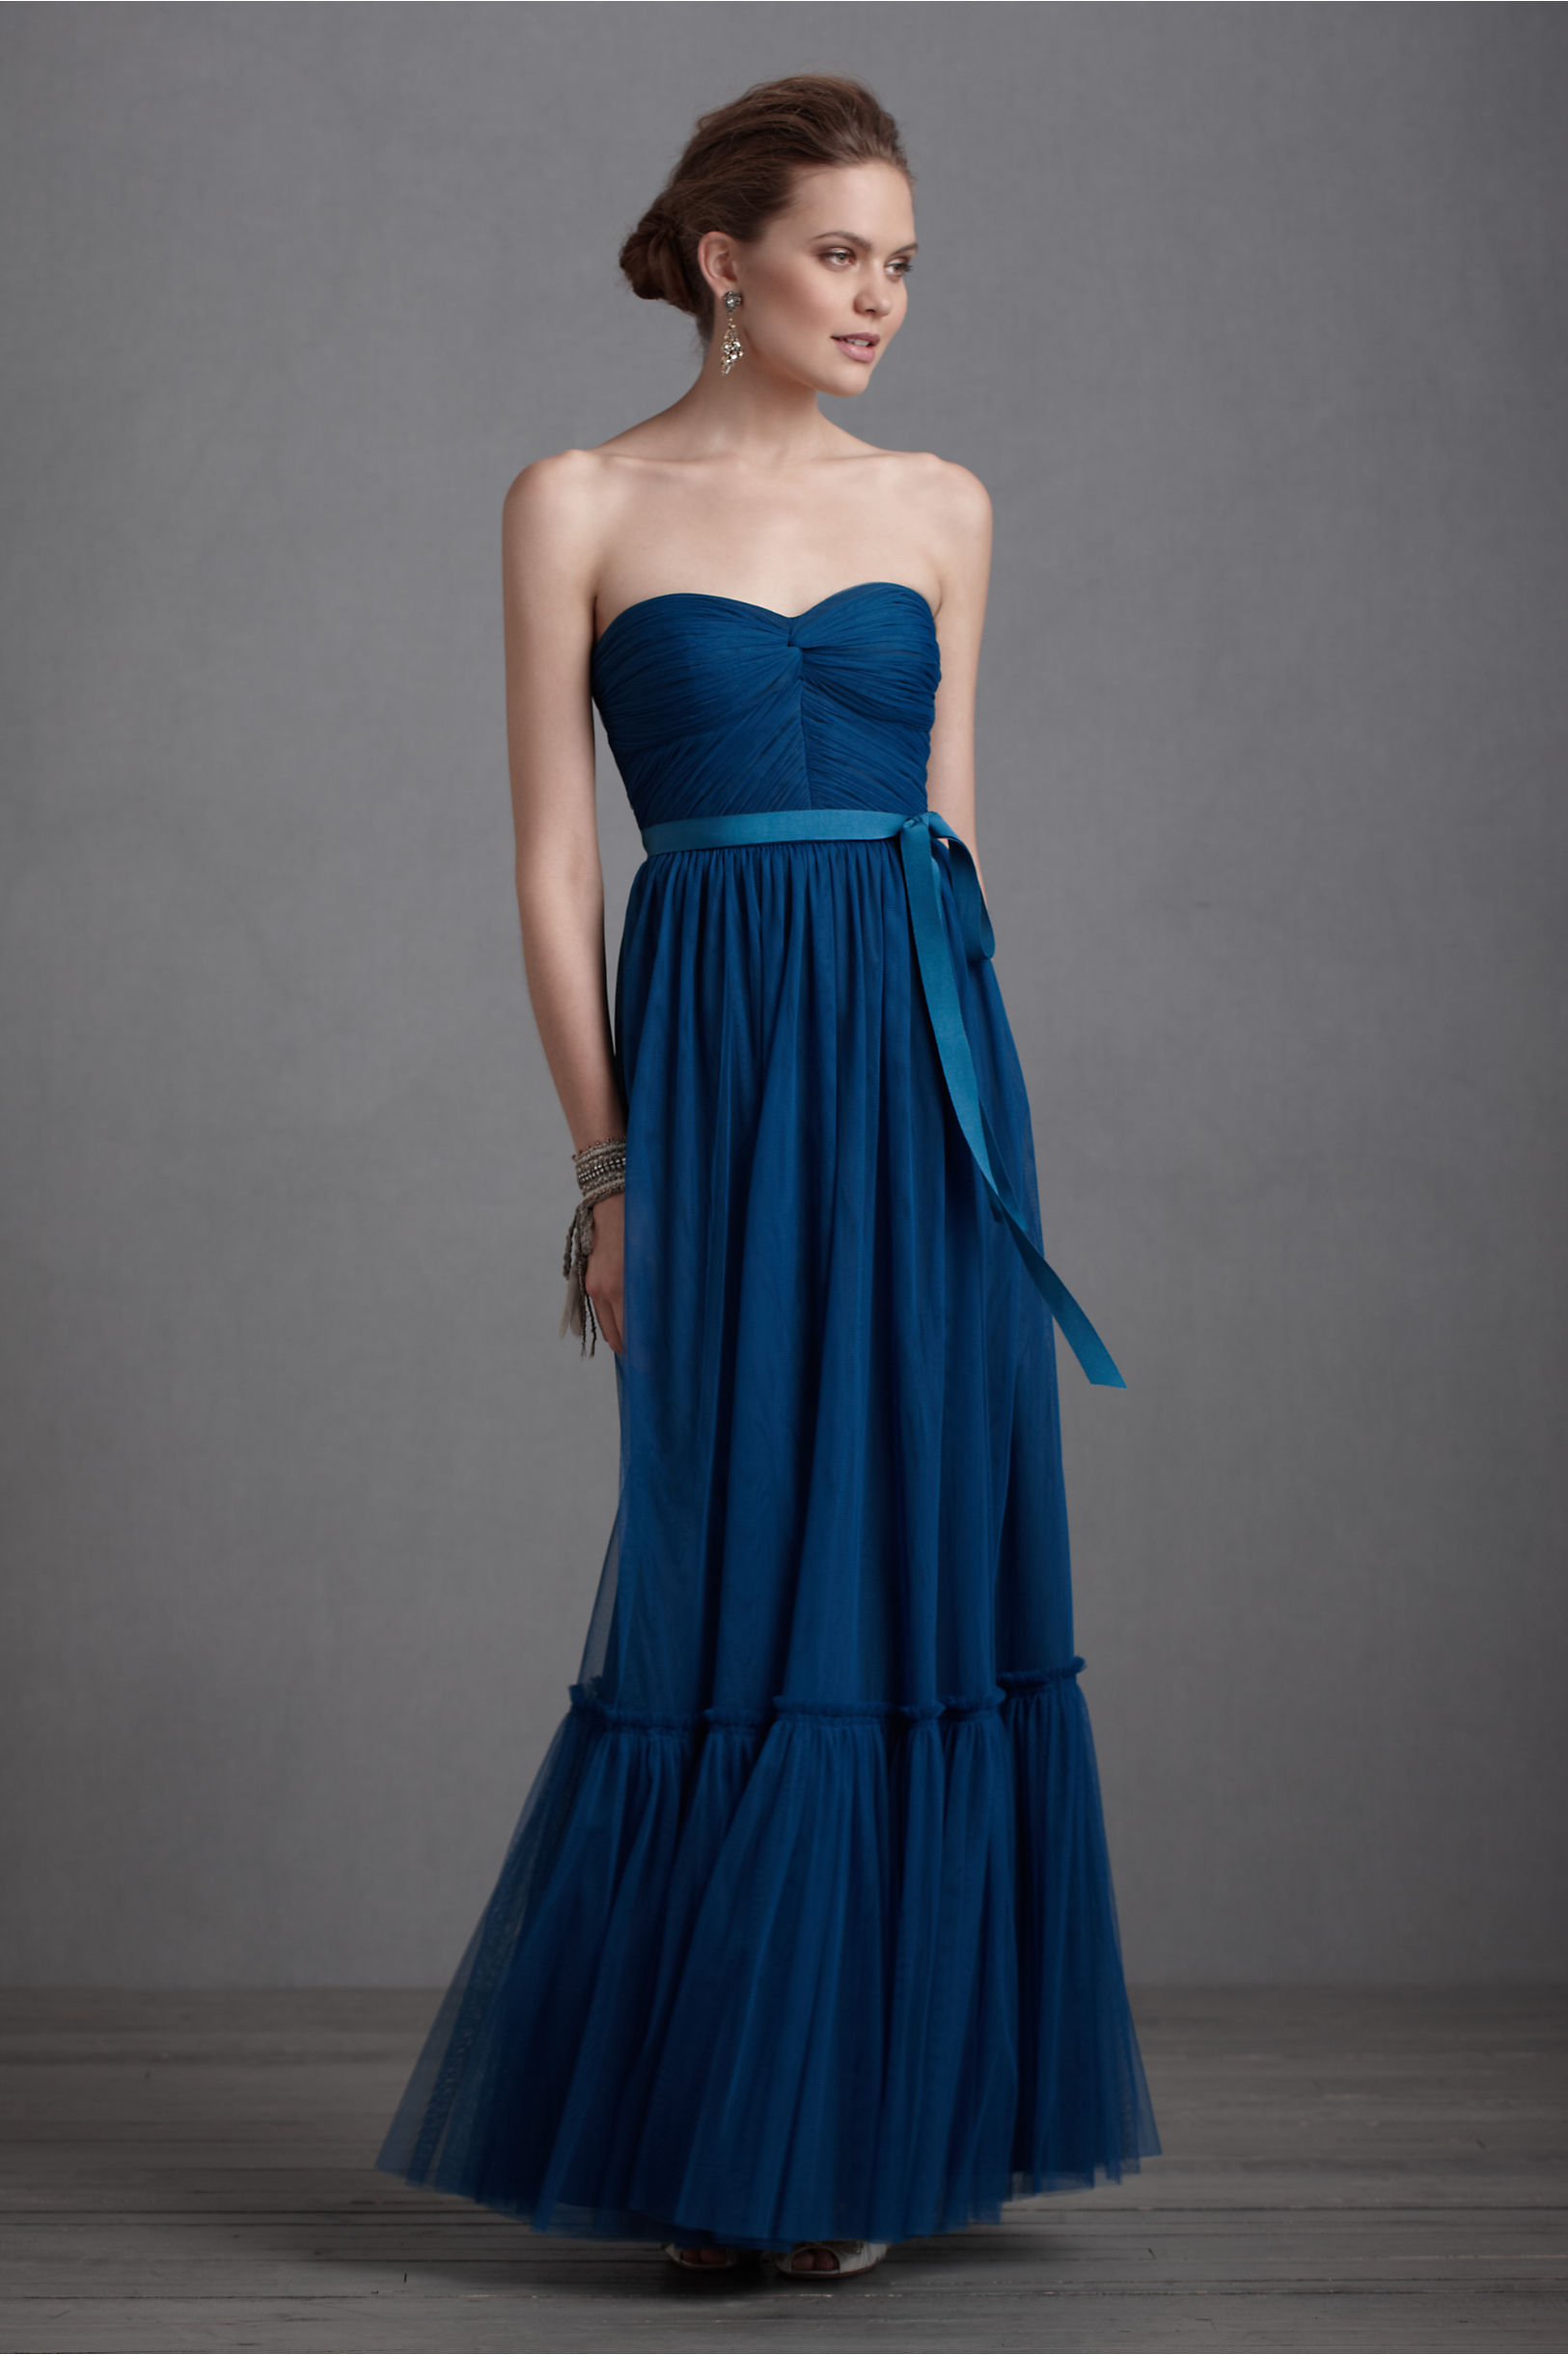 Elegant-navy-blue-bridesmaid-dress-long-gown-bhldn.original